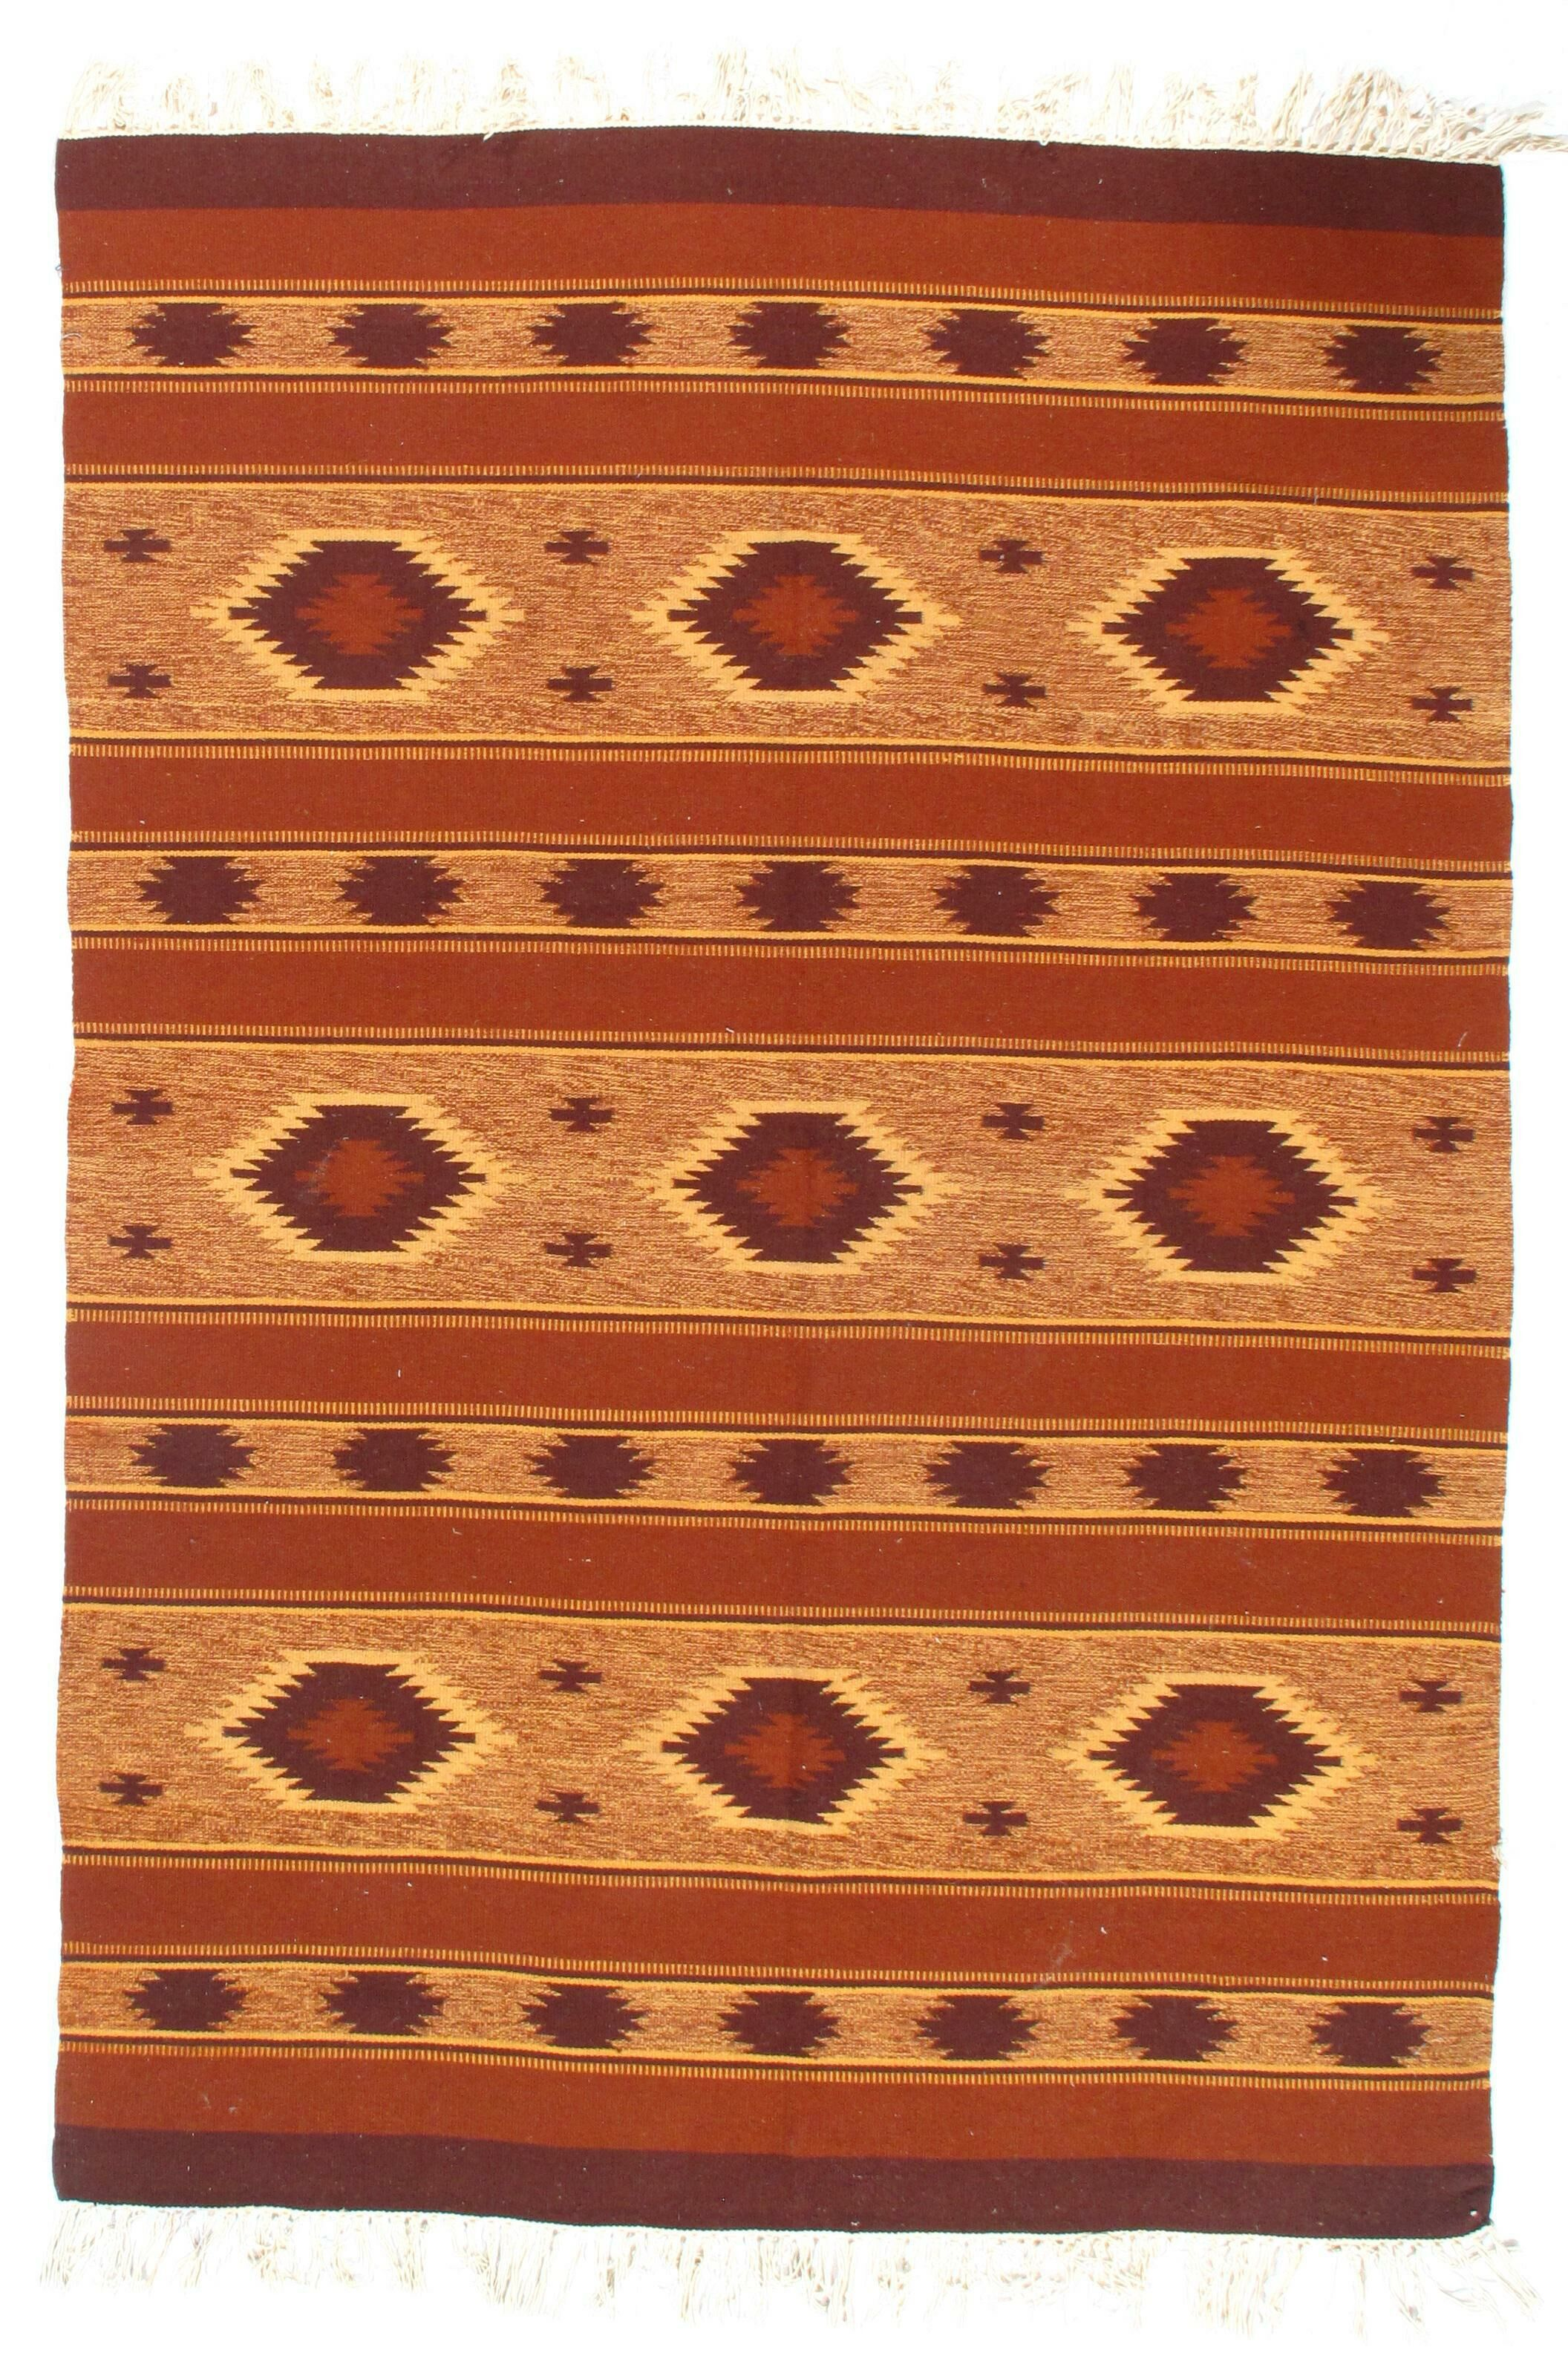 Afghan Baluch Kilim Hand-Knotted Wool Brown/Red Area Rug